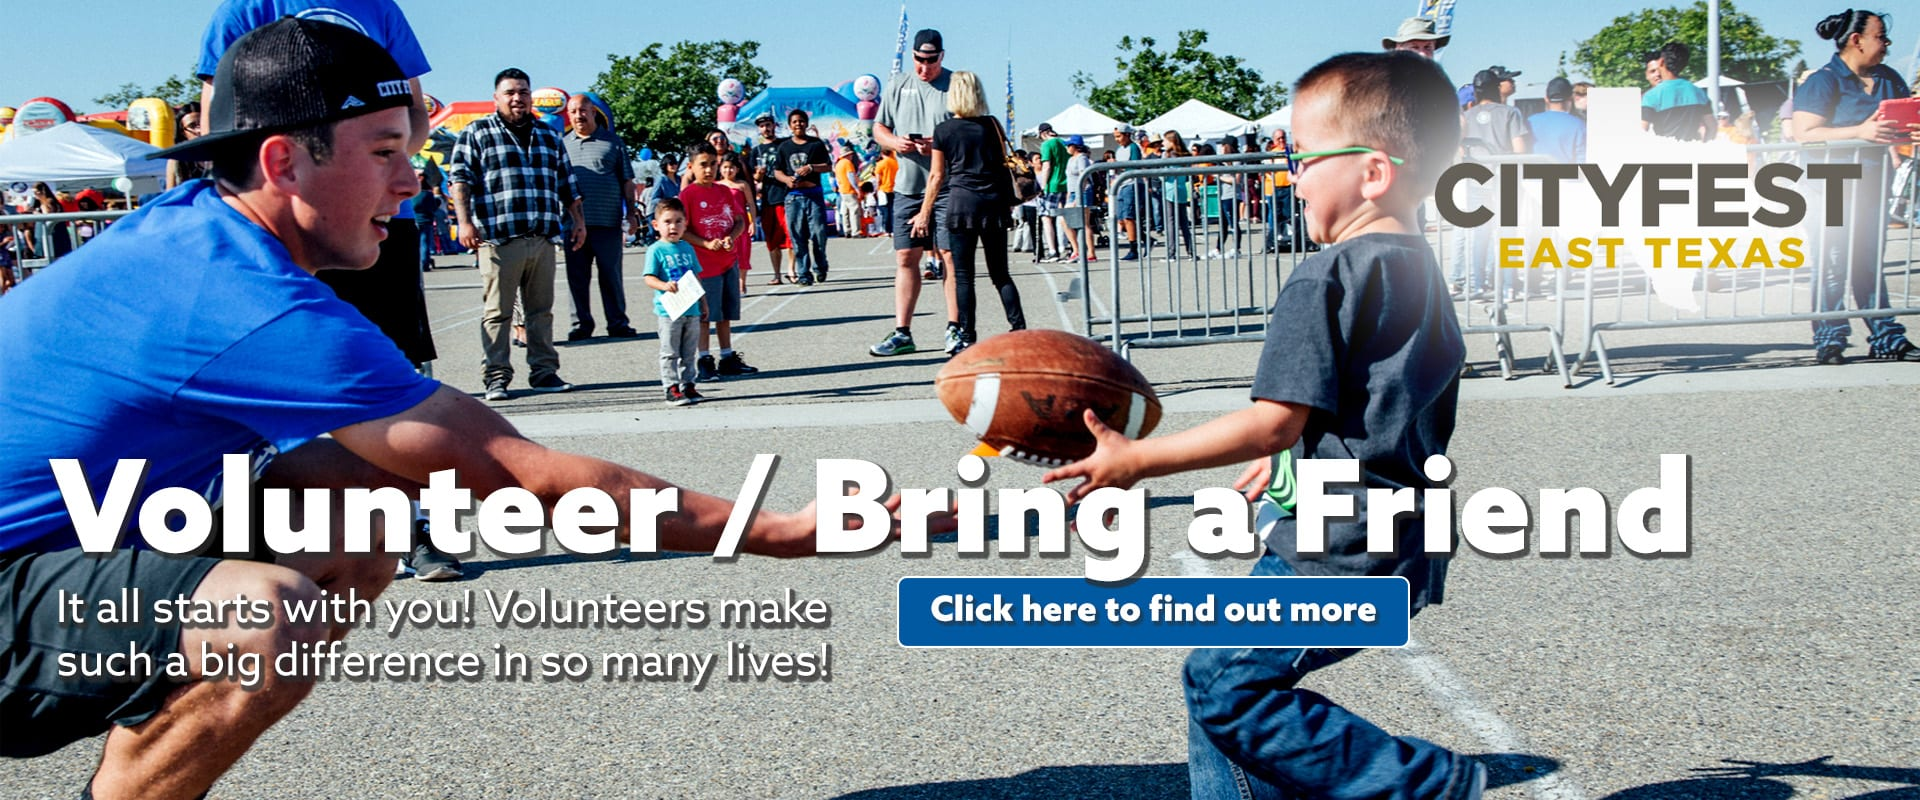 CityFest_Volunteer_Bring_a_Friend_KGLY